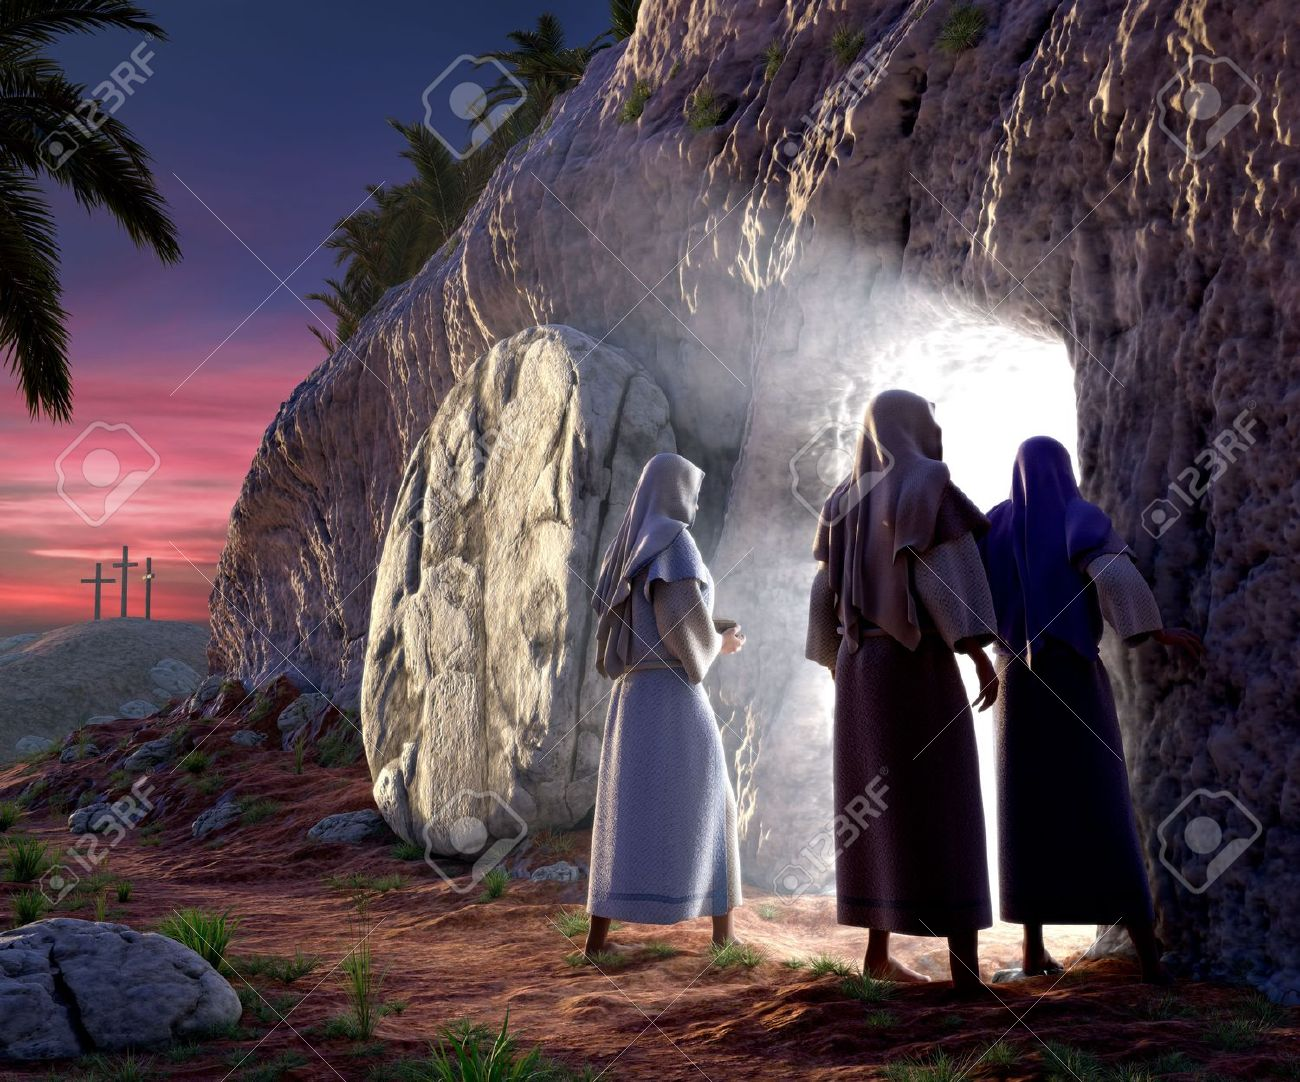 Mary Magdalene, Mary, & Salom walking up to the bright empty tomb of Jesus Christ early Sunday morning, Showing Golgotha in the background. - 7038024